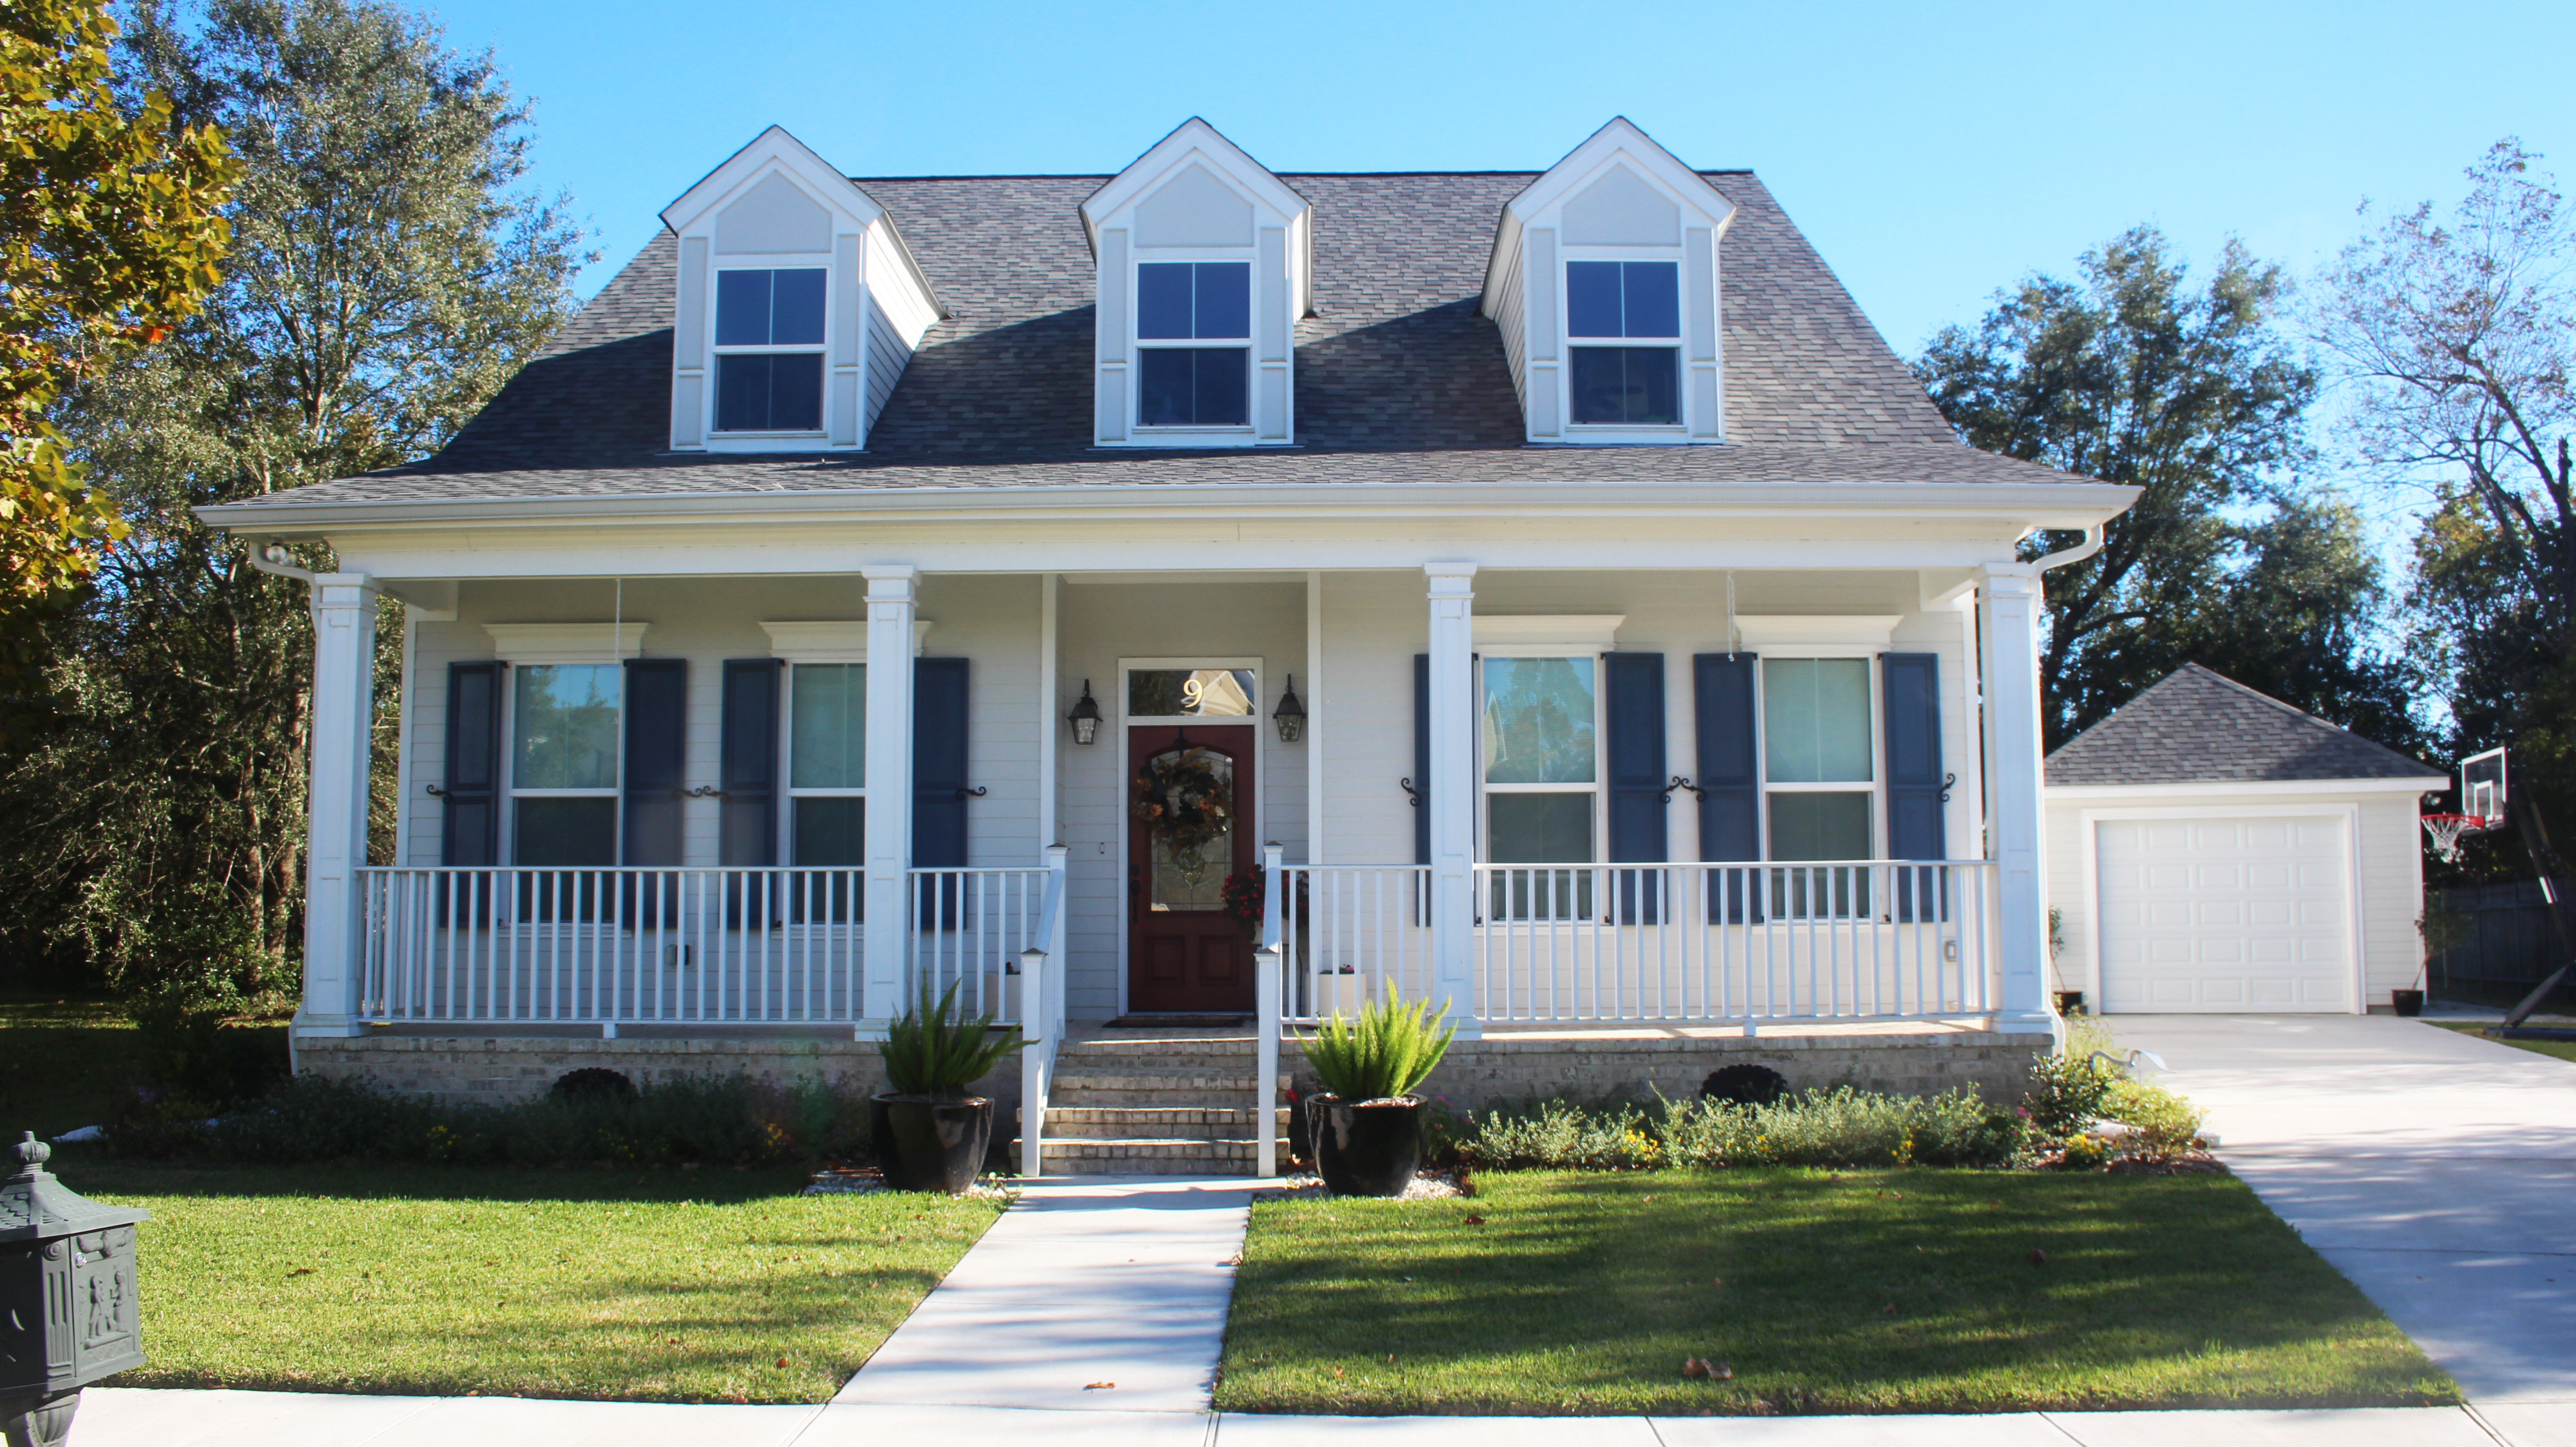 gretna la homes with New Custom Homes on Article 62fa60f1 8dc7 558d B6e9 F4421ca5bd5e besides West Bank in addition Medora Indiana also 5 Bedrooms Single Family Houses New Orleans as well Louisiana Parishes.